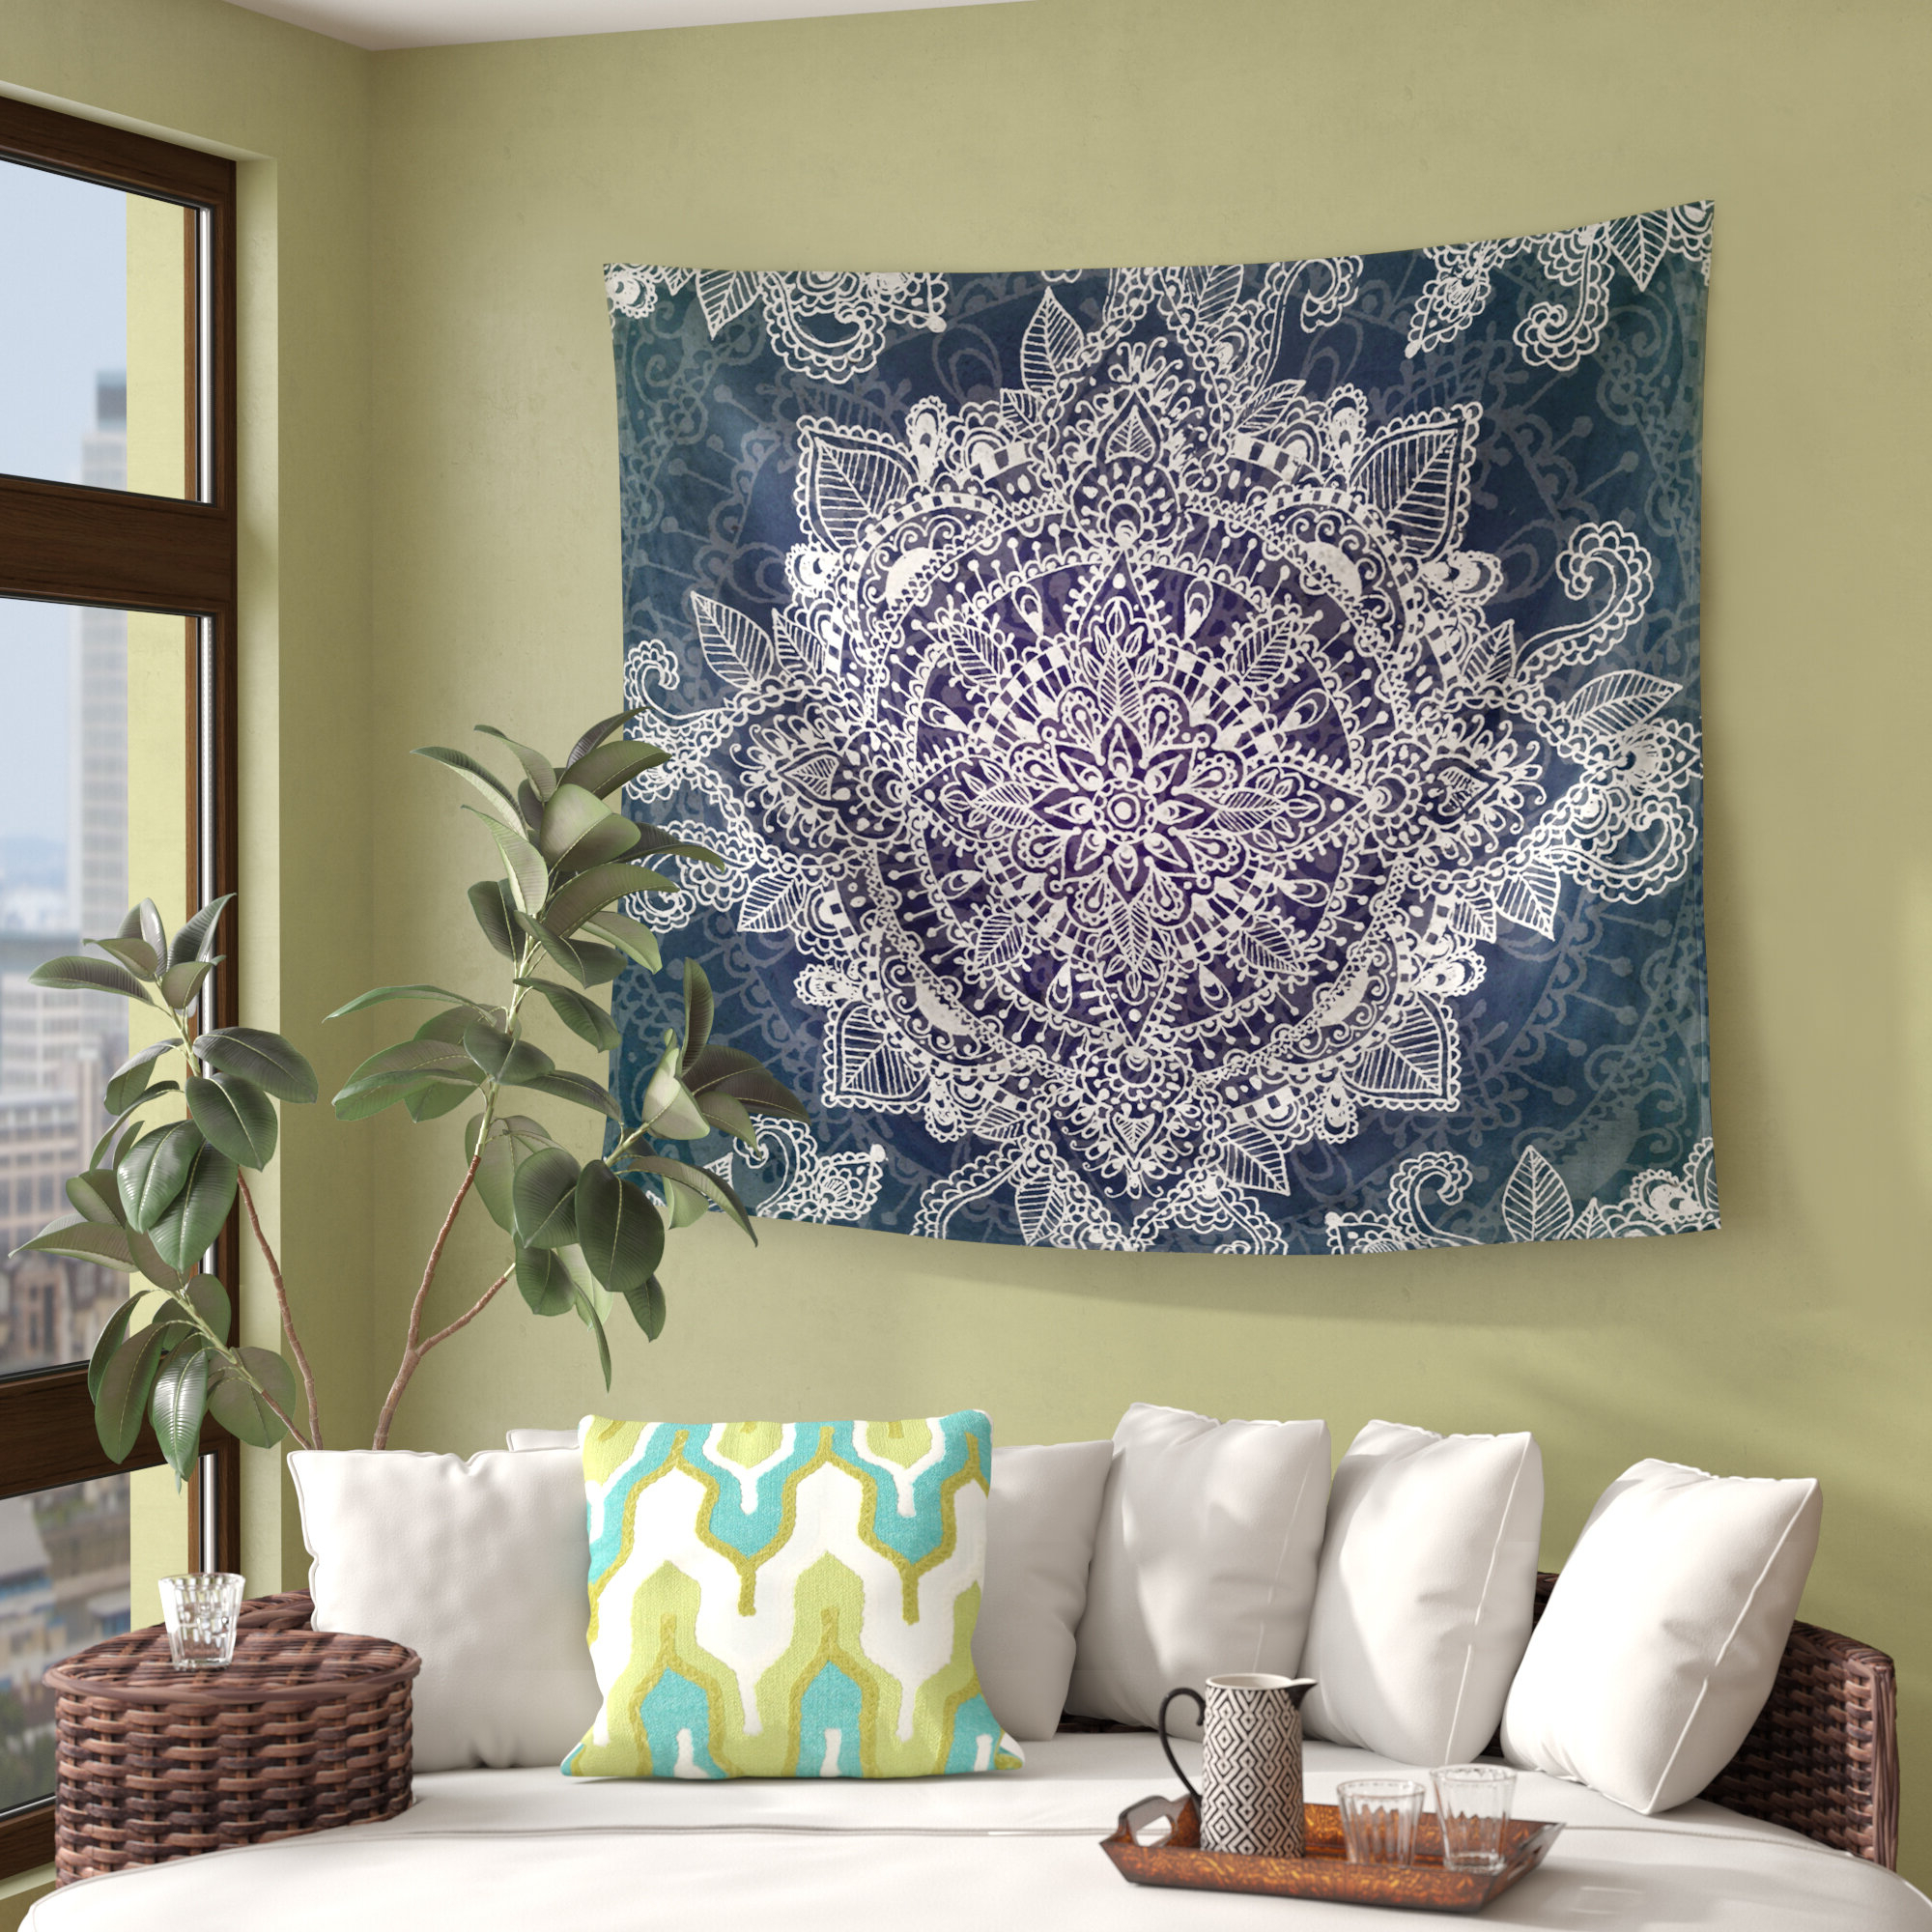 Blended Fabric Lago Di Como Ii Wall Hangings With Fashionable Tapestries You'll Love In 2021 » Wayfair (View 20 of 20)